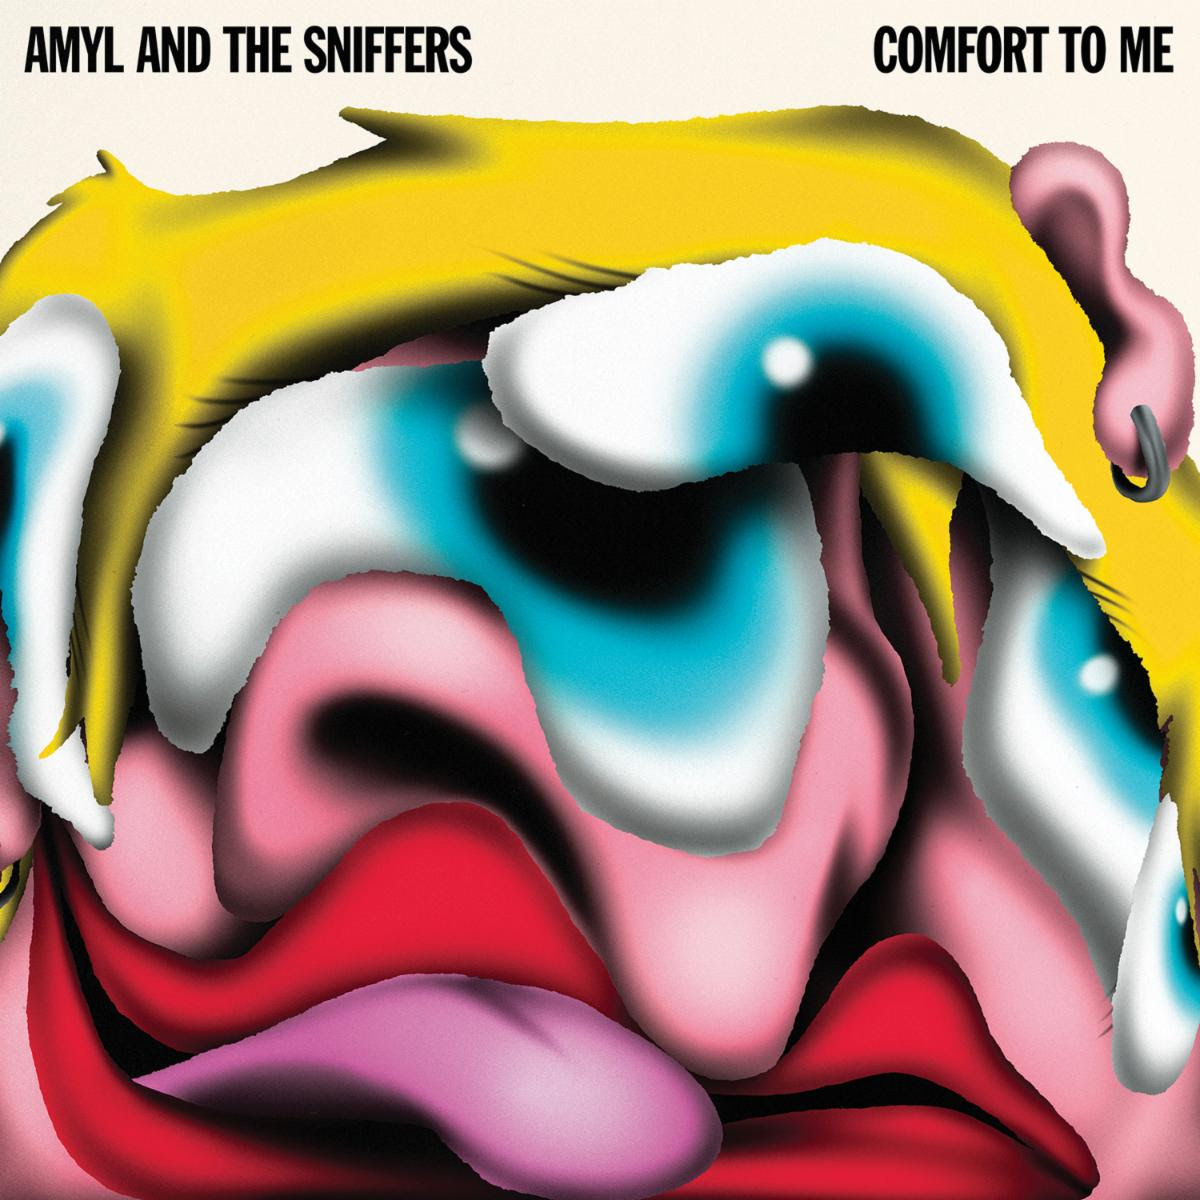 Amyl And The Sniffers: Comfort To Me [Album Review]